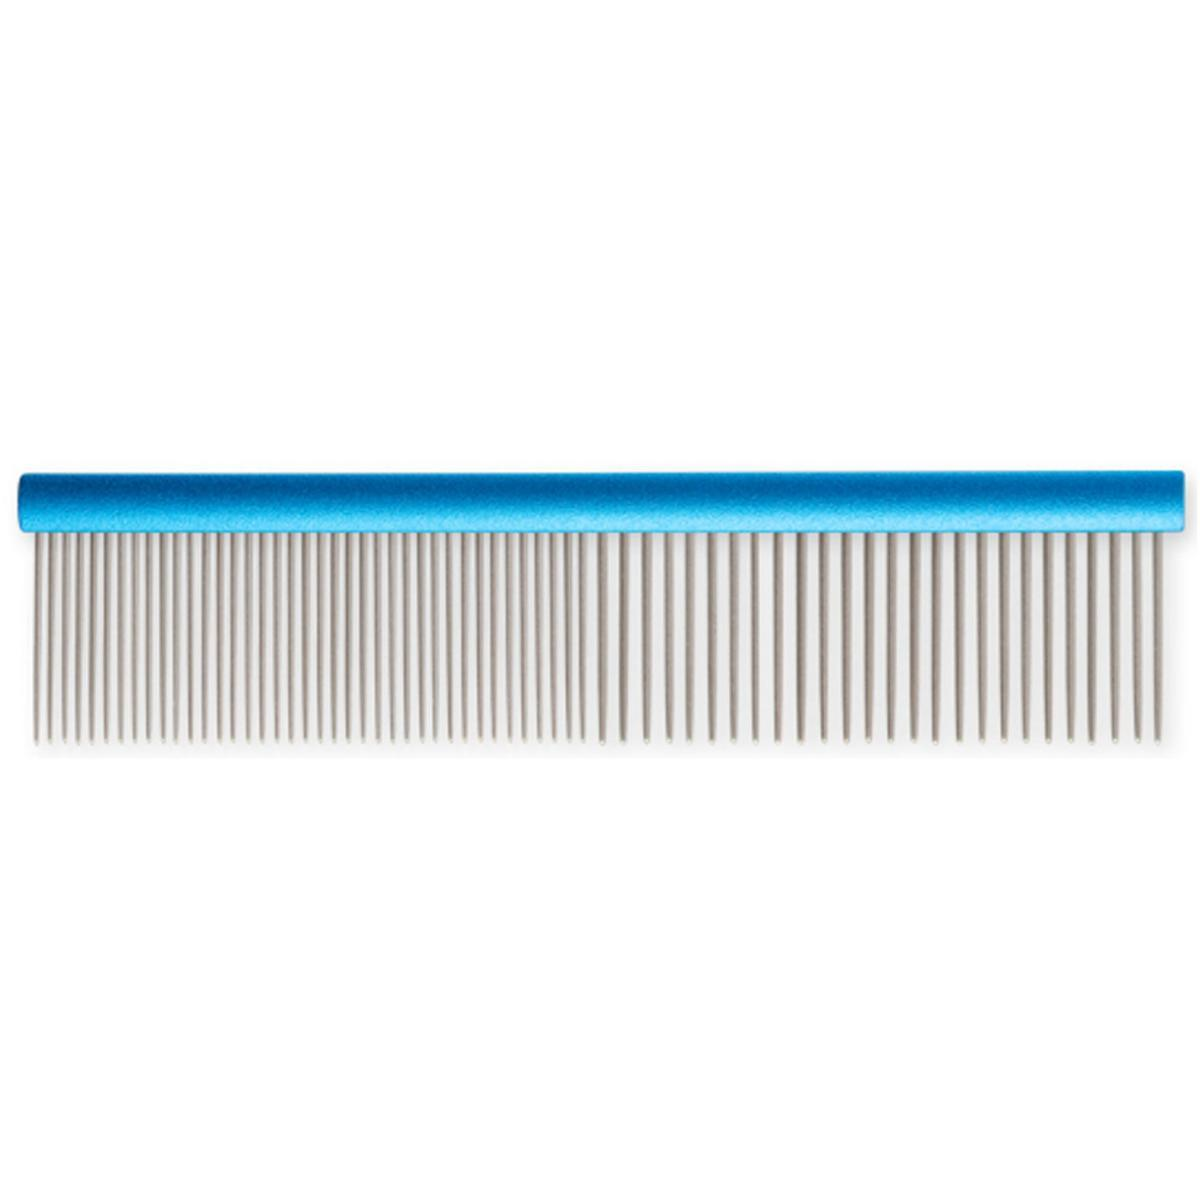 Ancol Ergo Medium Coarse Metal Comb